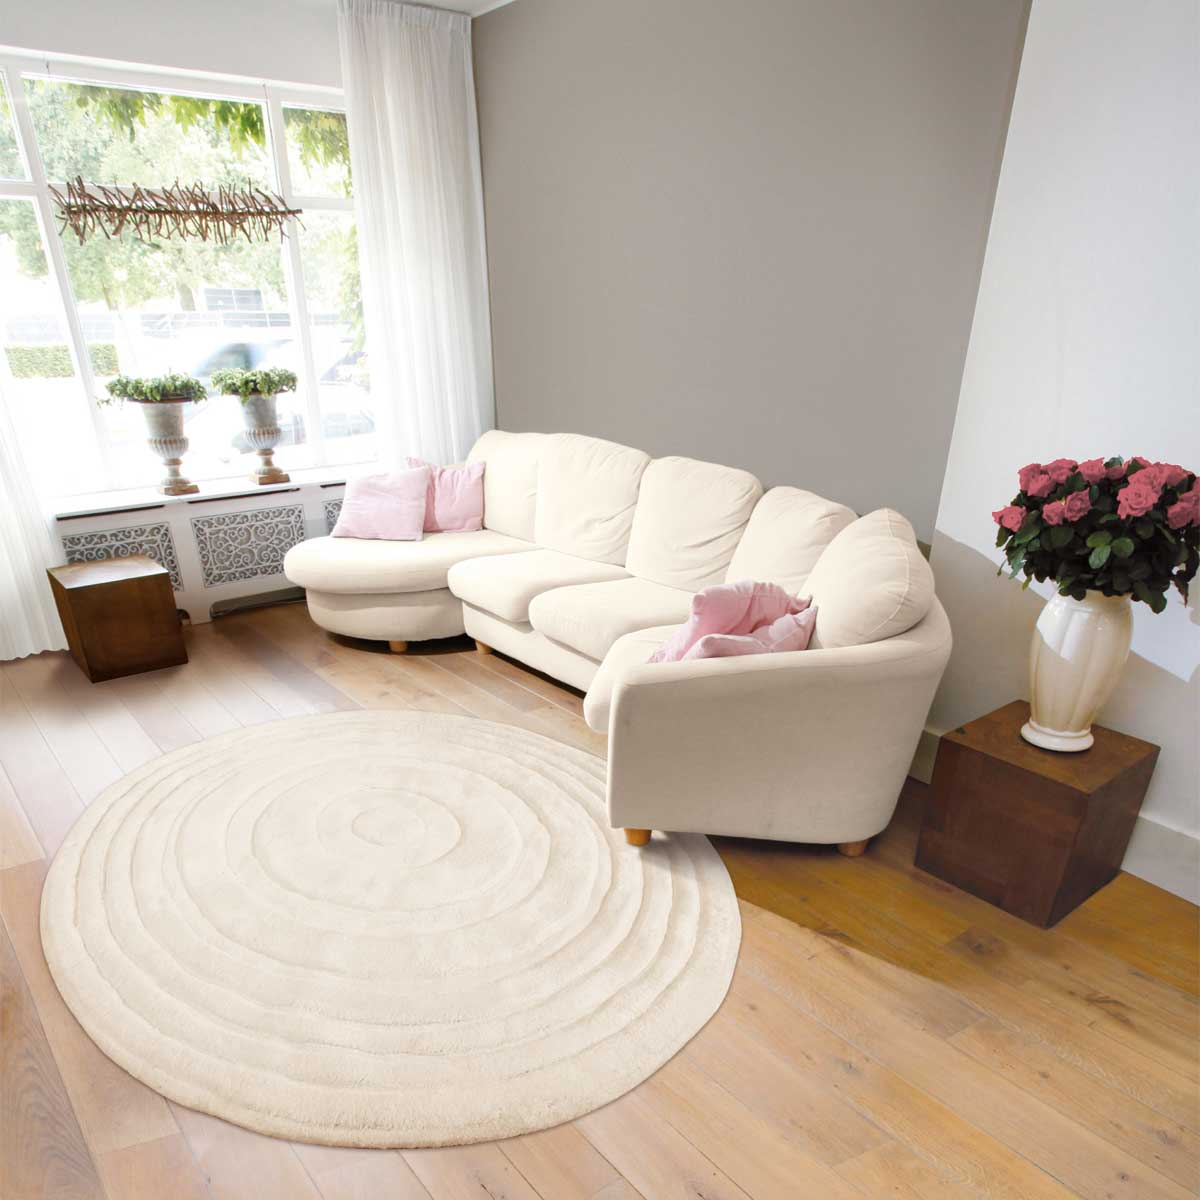 carrelage design tapis rond salon moderne design pour. Black Bedroom Furniture Sets. Home Design Ideas